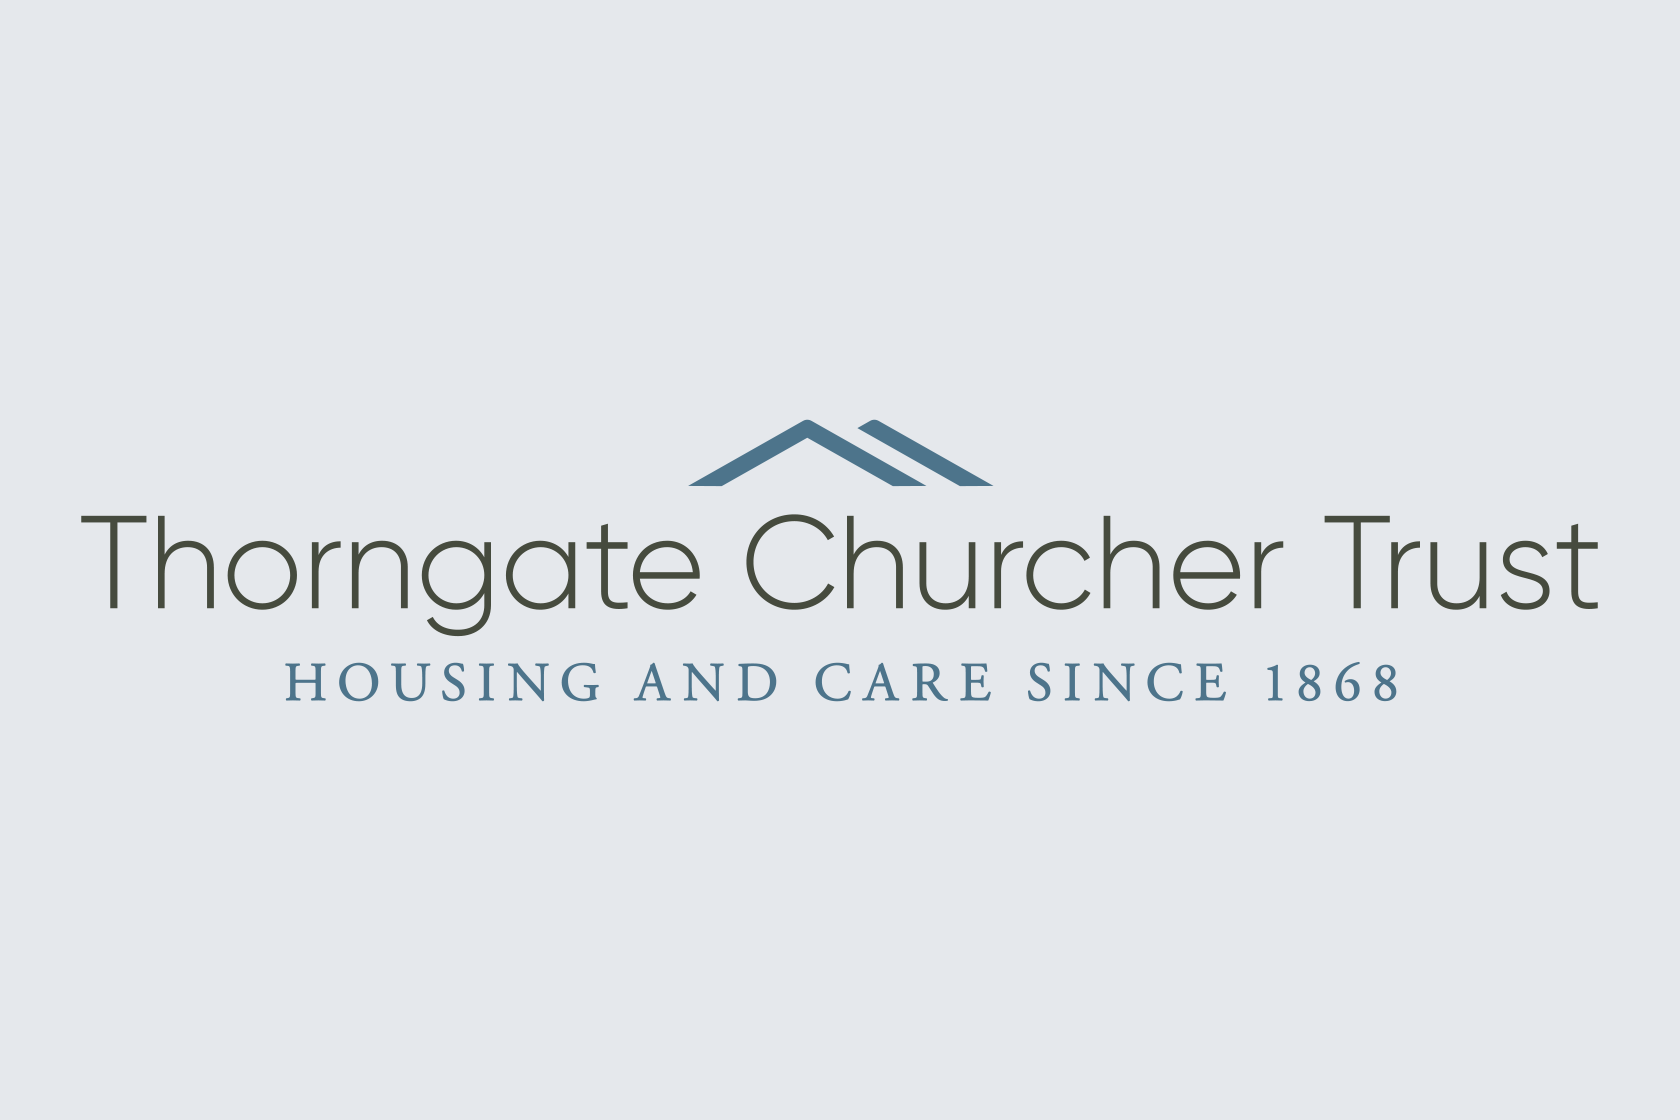 Hillier Consulting designed the Thorngate Churcher Trust corporate identity and Thorngate Living brand as part of the charity's complete corporate communications, marketing and public affairs strategy